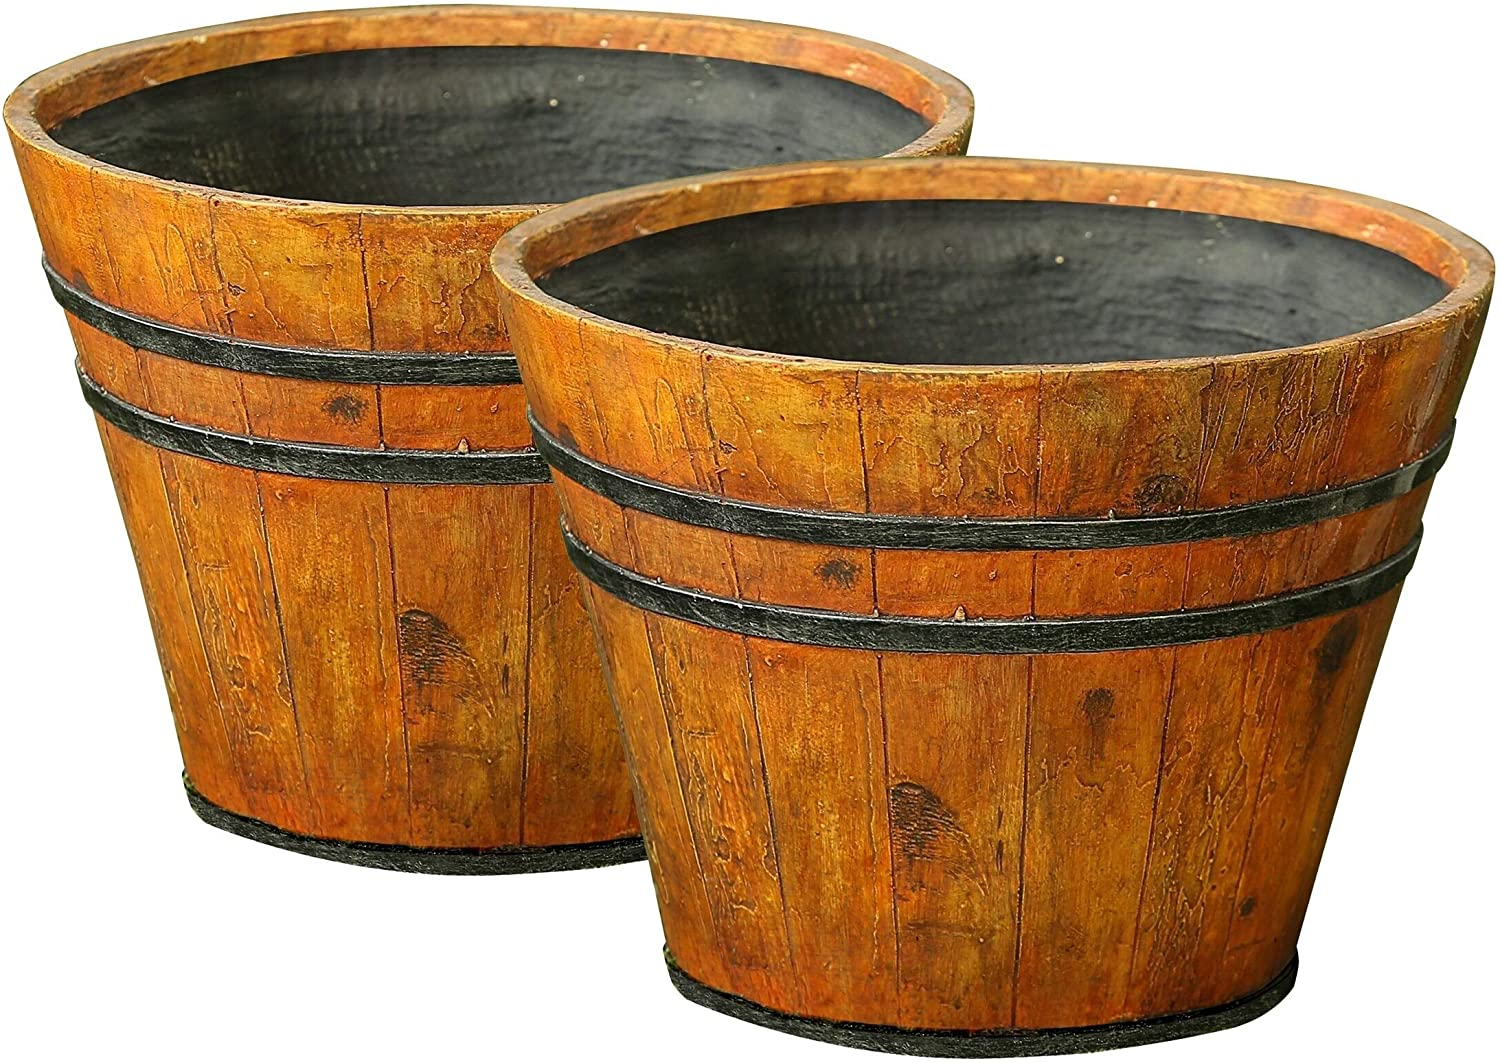 Set 2 Wood Finish Barrel Planters Brown Rustic Round